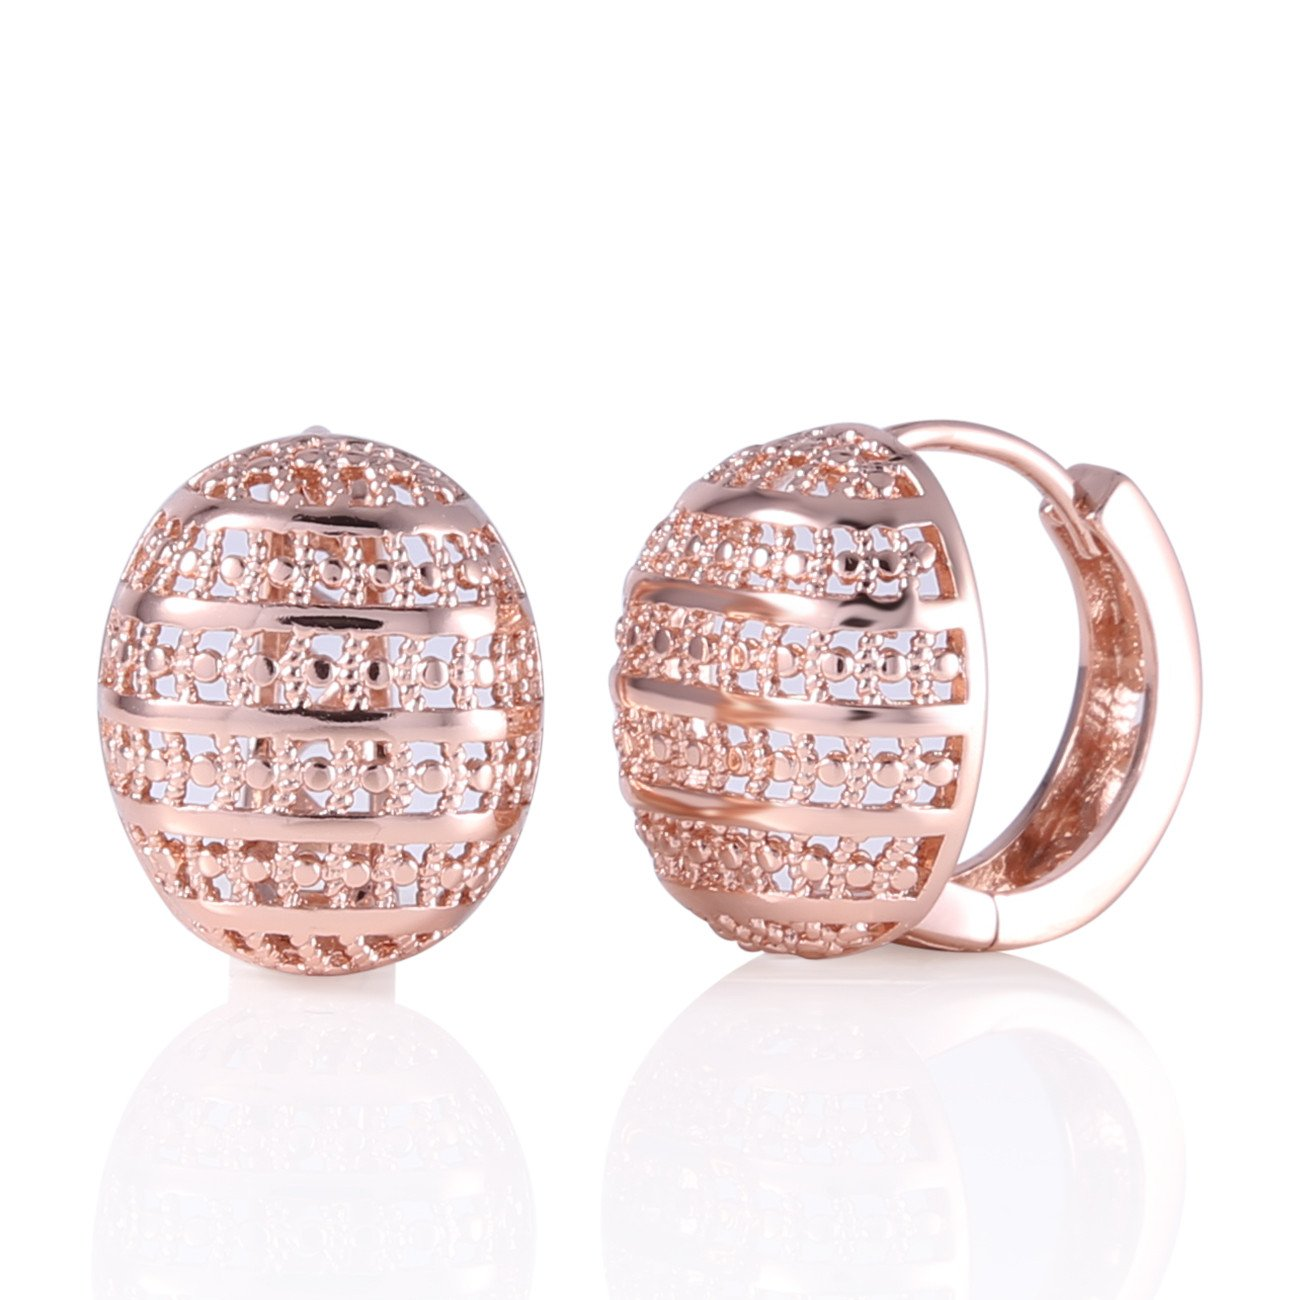 GULICX Rose Gold Tone Fashion Girl Women Party Gorgeous Hoop Earring for gift Gelei Jewelry Co. Ltd. E401c